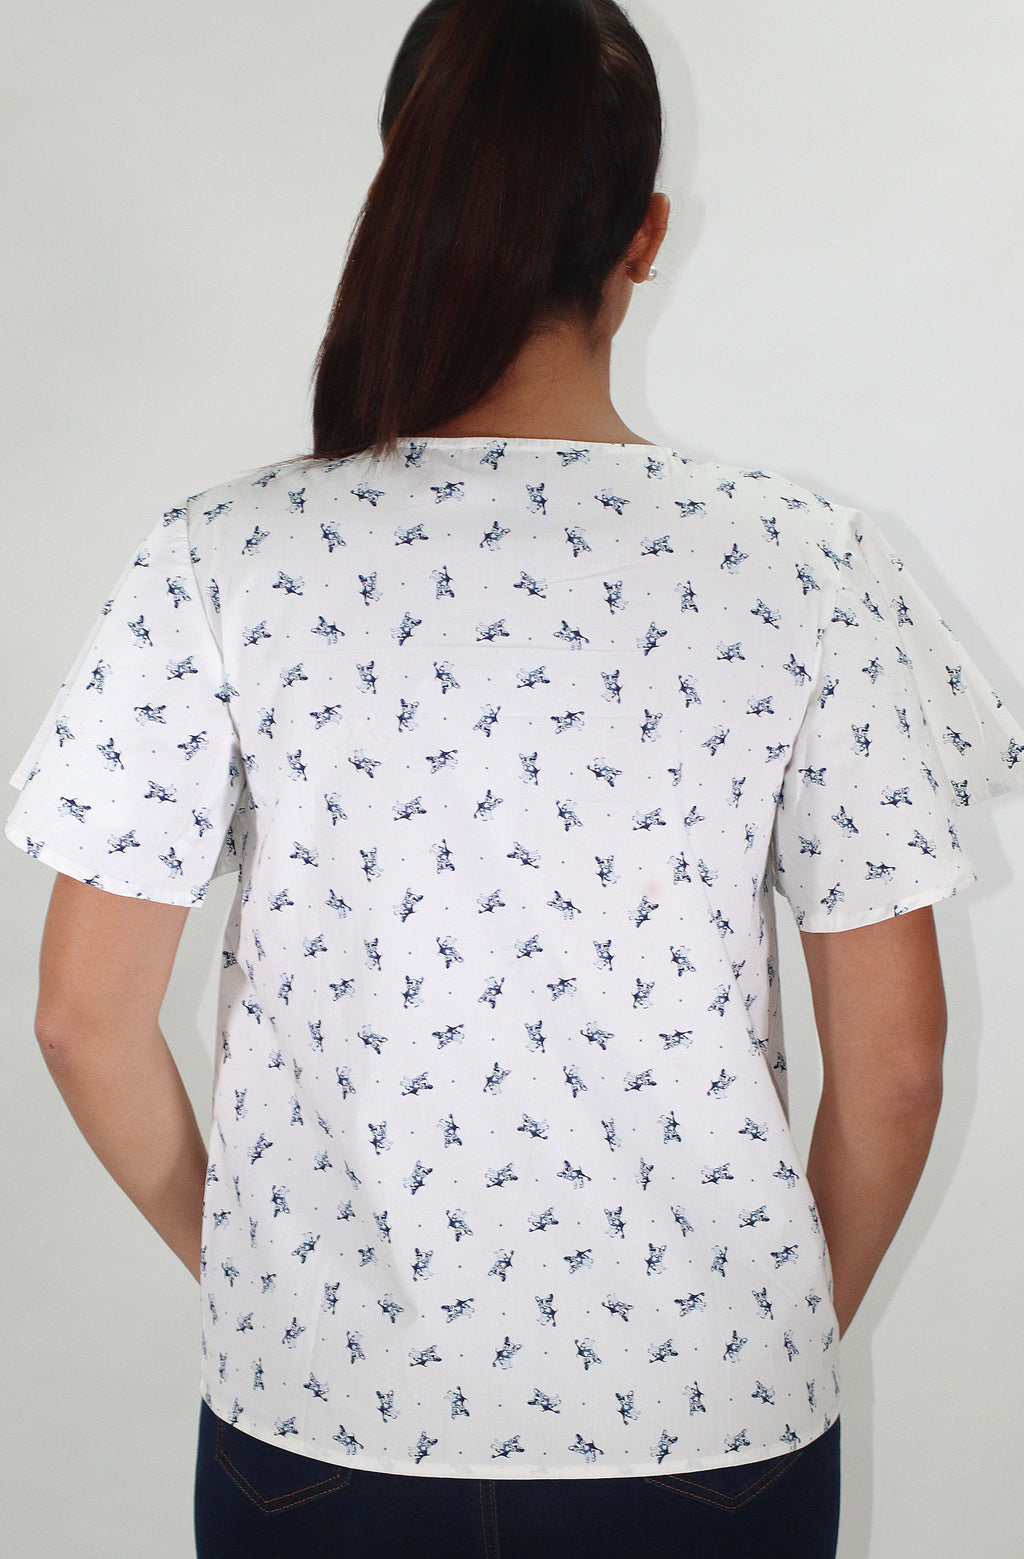 White Printed Shirt | IQ 127 (6058)